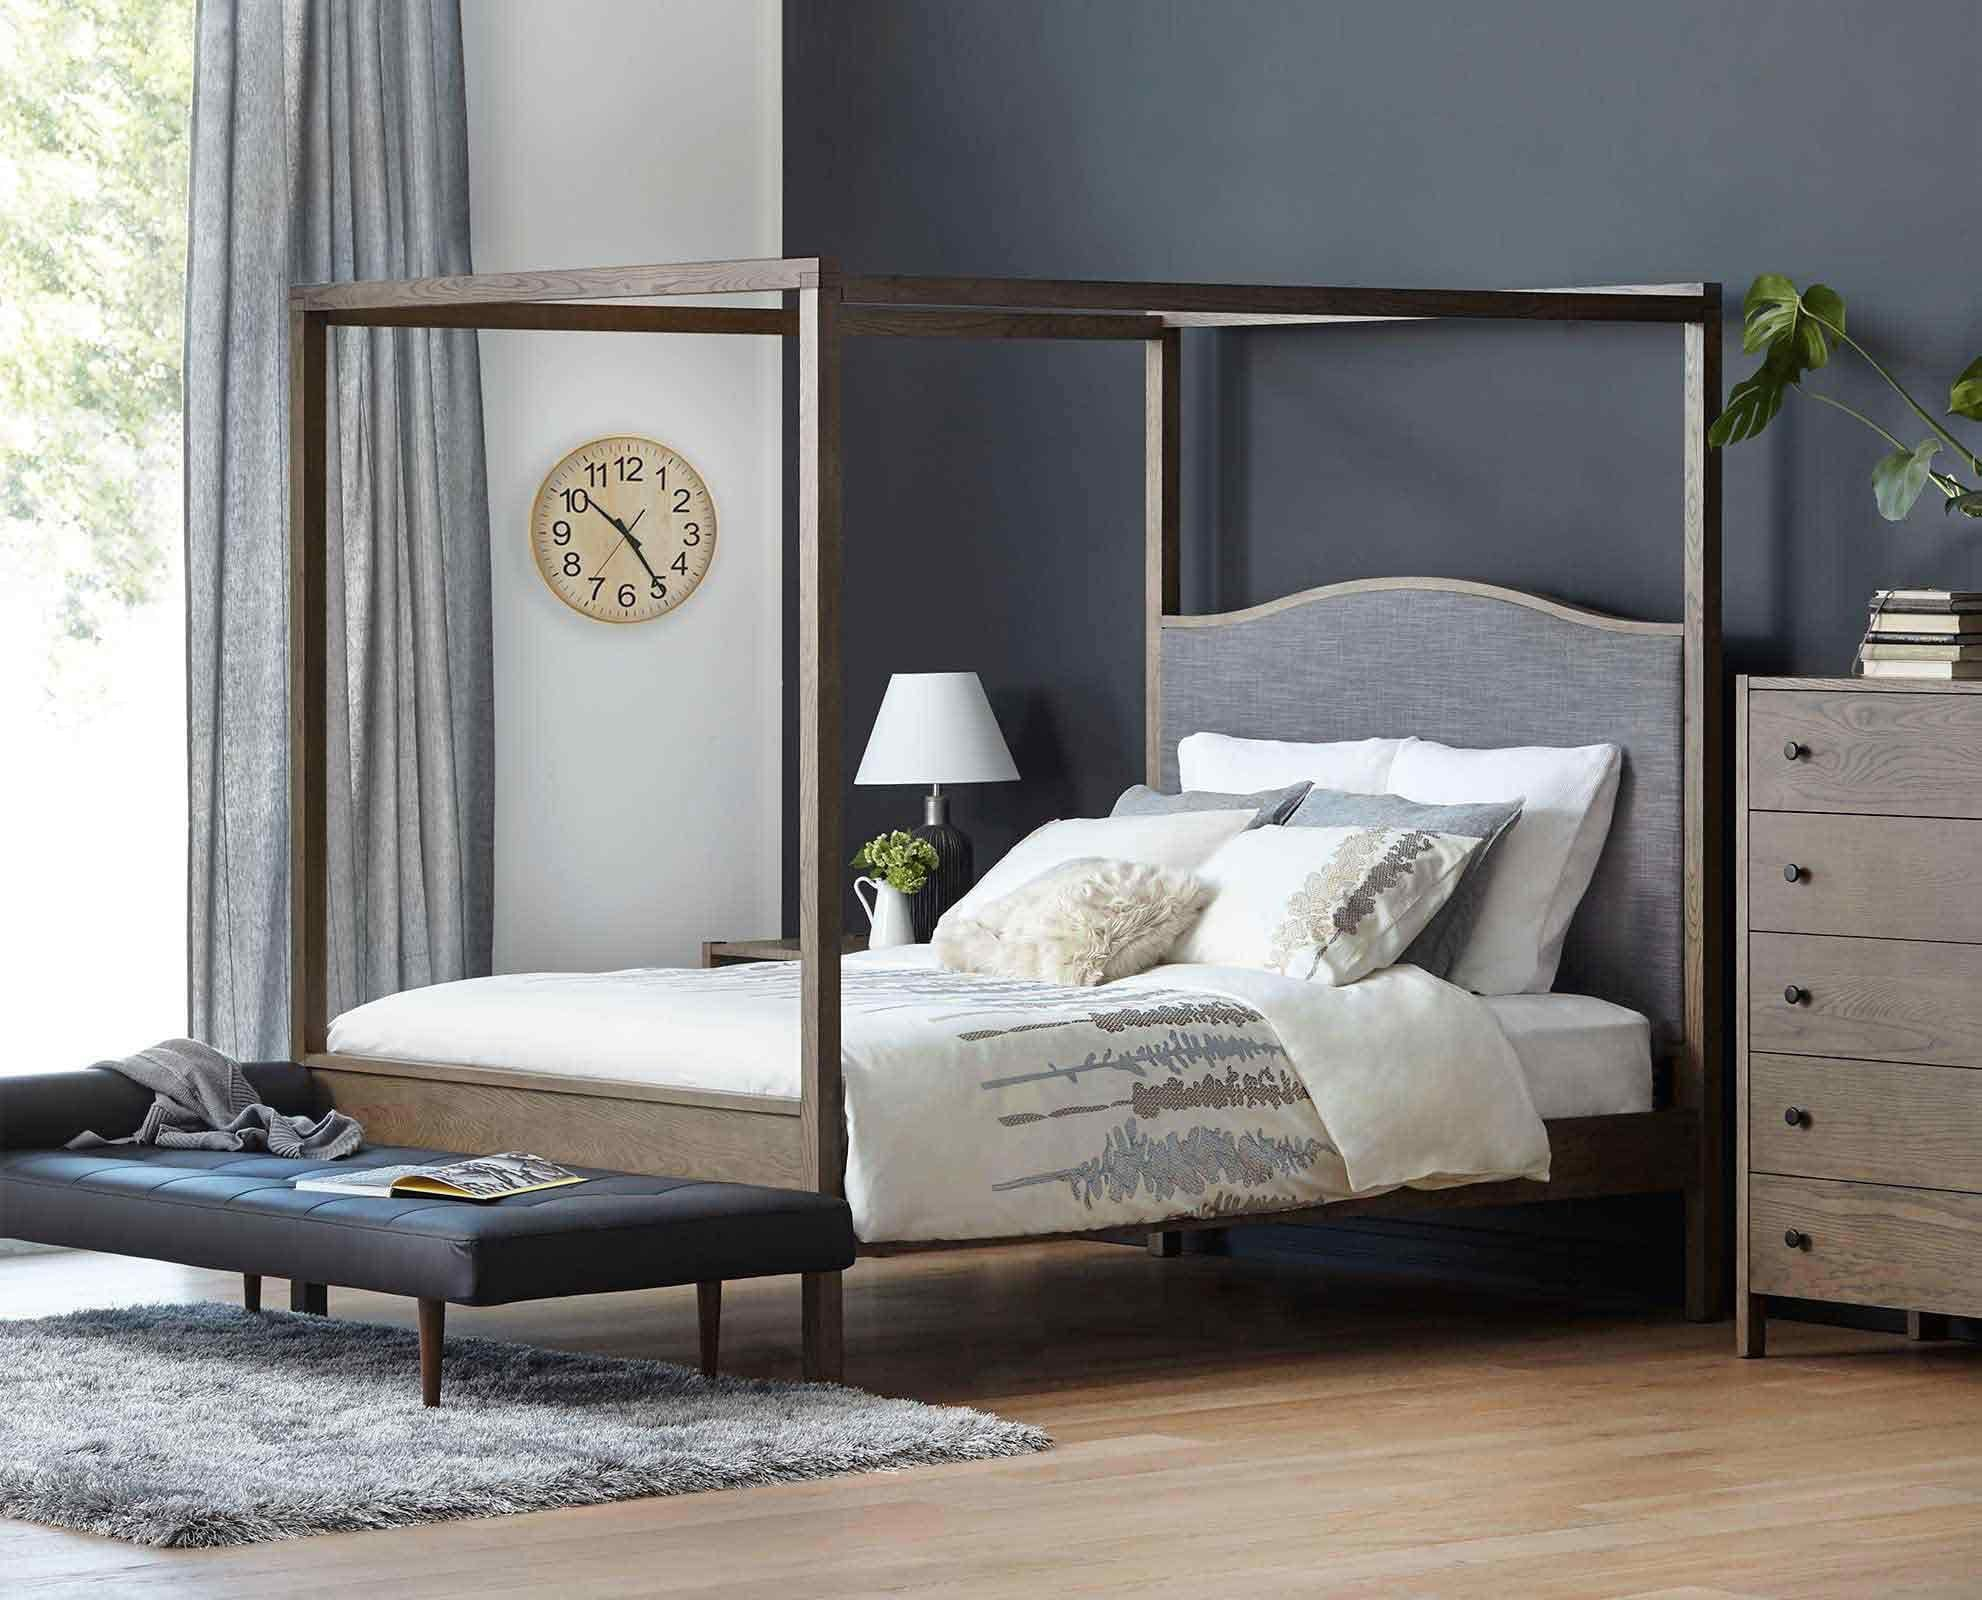 New Wood and Metal Canopy Bed